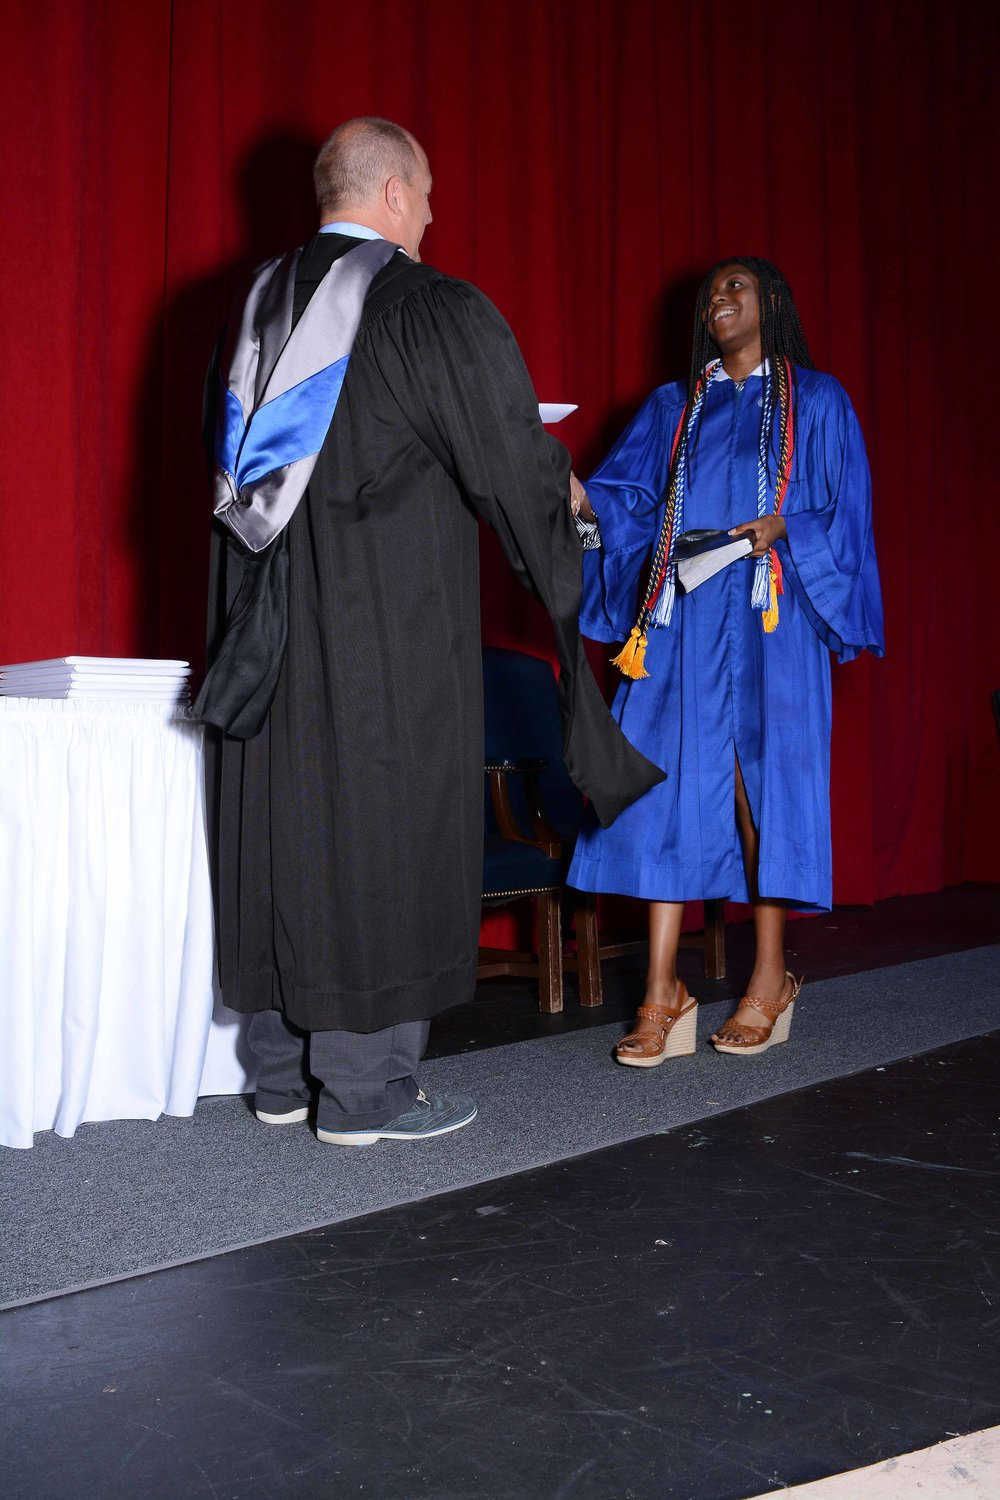 May14 Commencement170.jpg